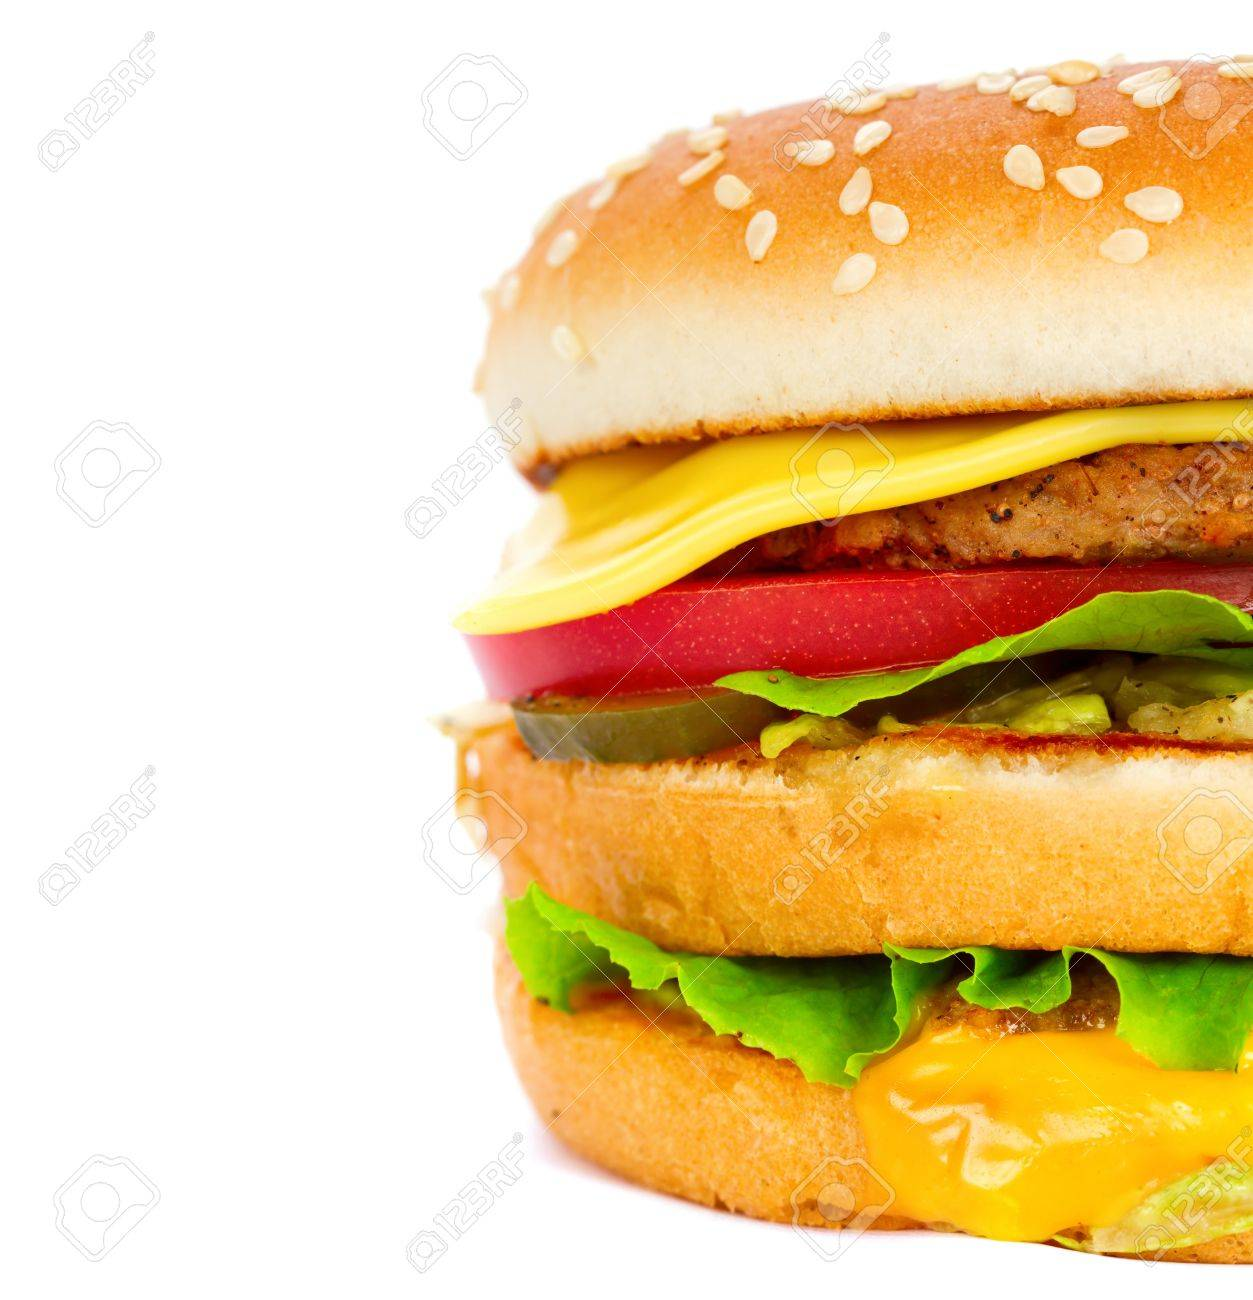 cheeseburger isolated on white - 9940052